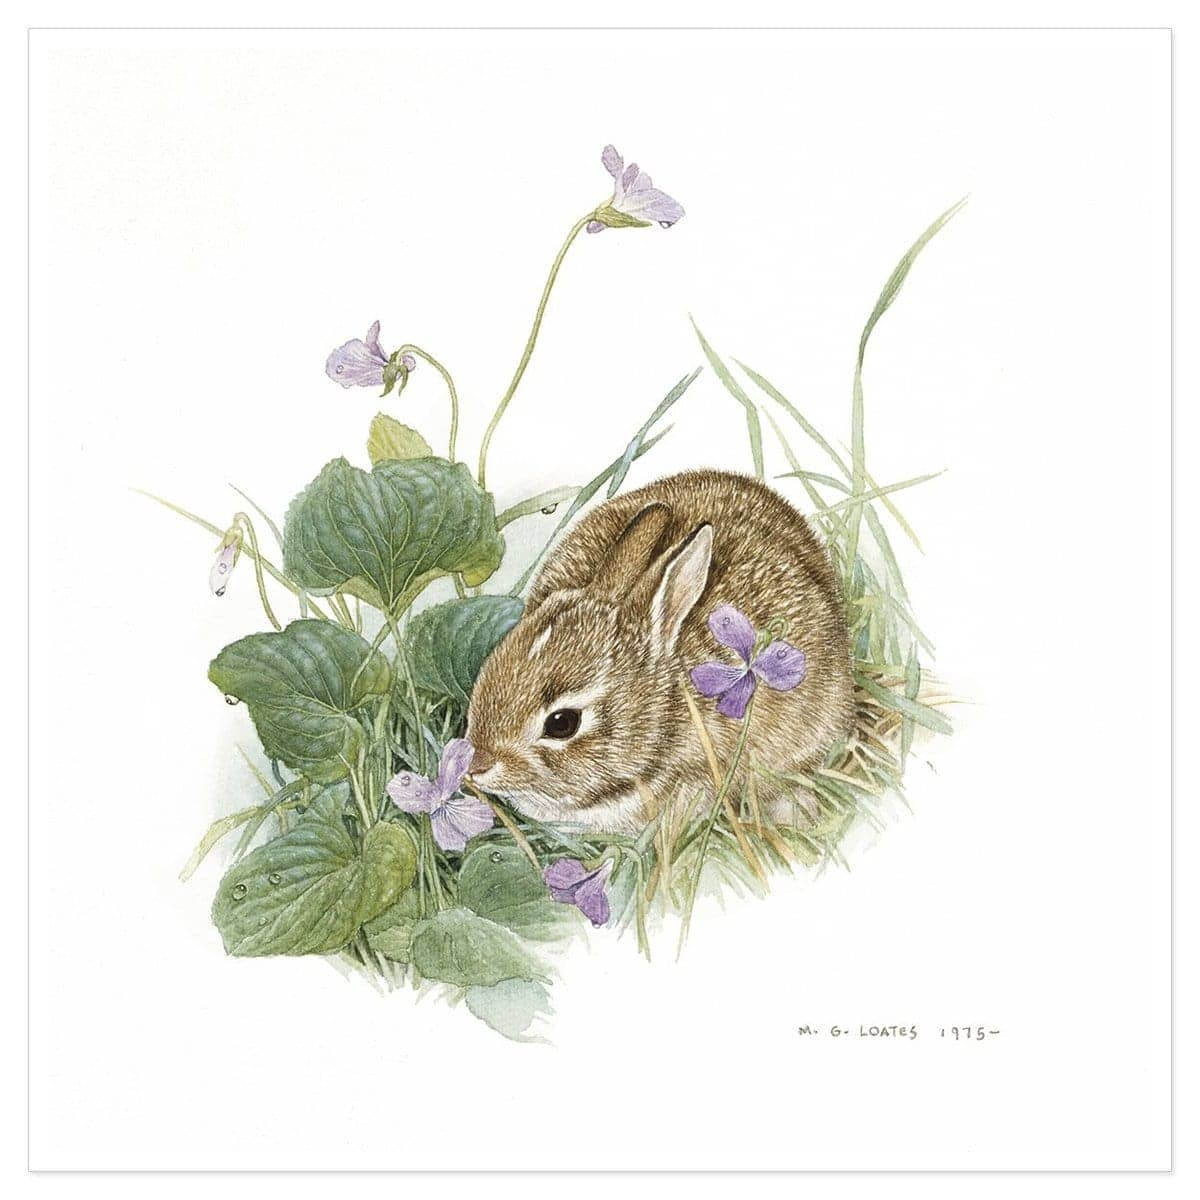 Cottontail Bunny - Art Print by Glen Loates from the Glen Loates Store